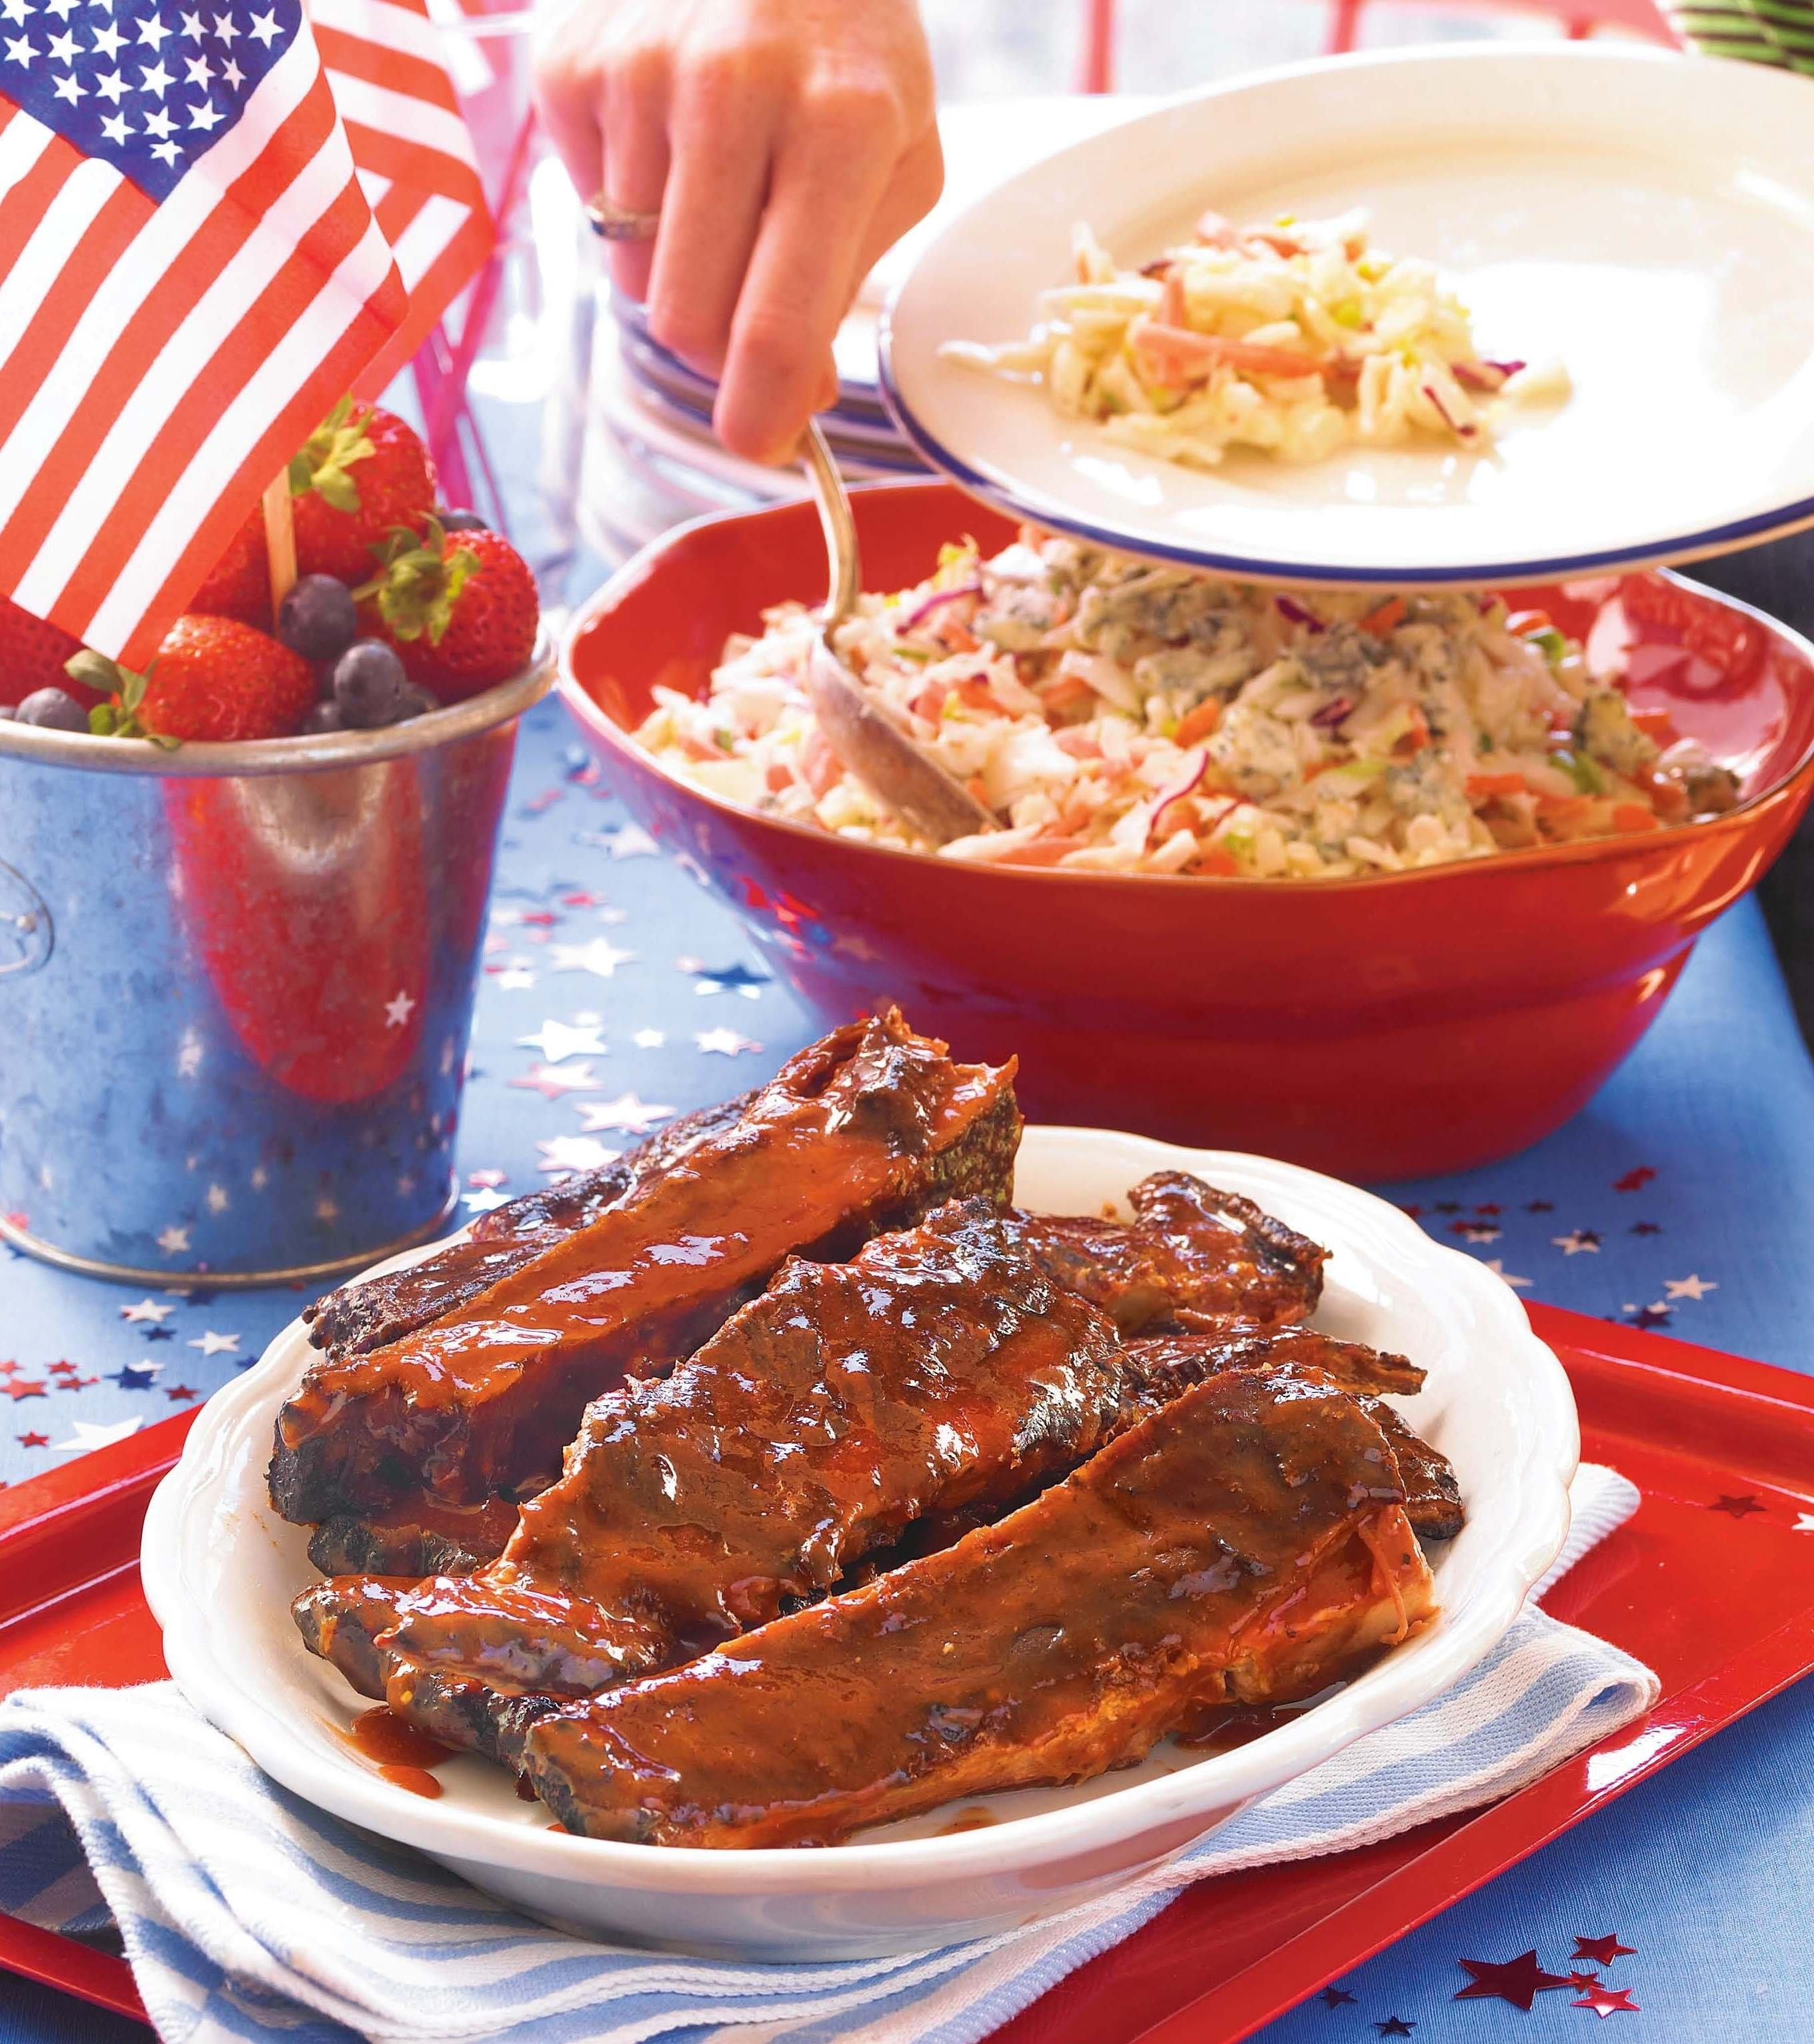 family fun july 4 ideas | 4th of july recipe ideas from the half